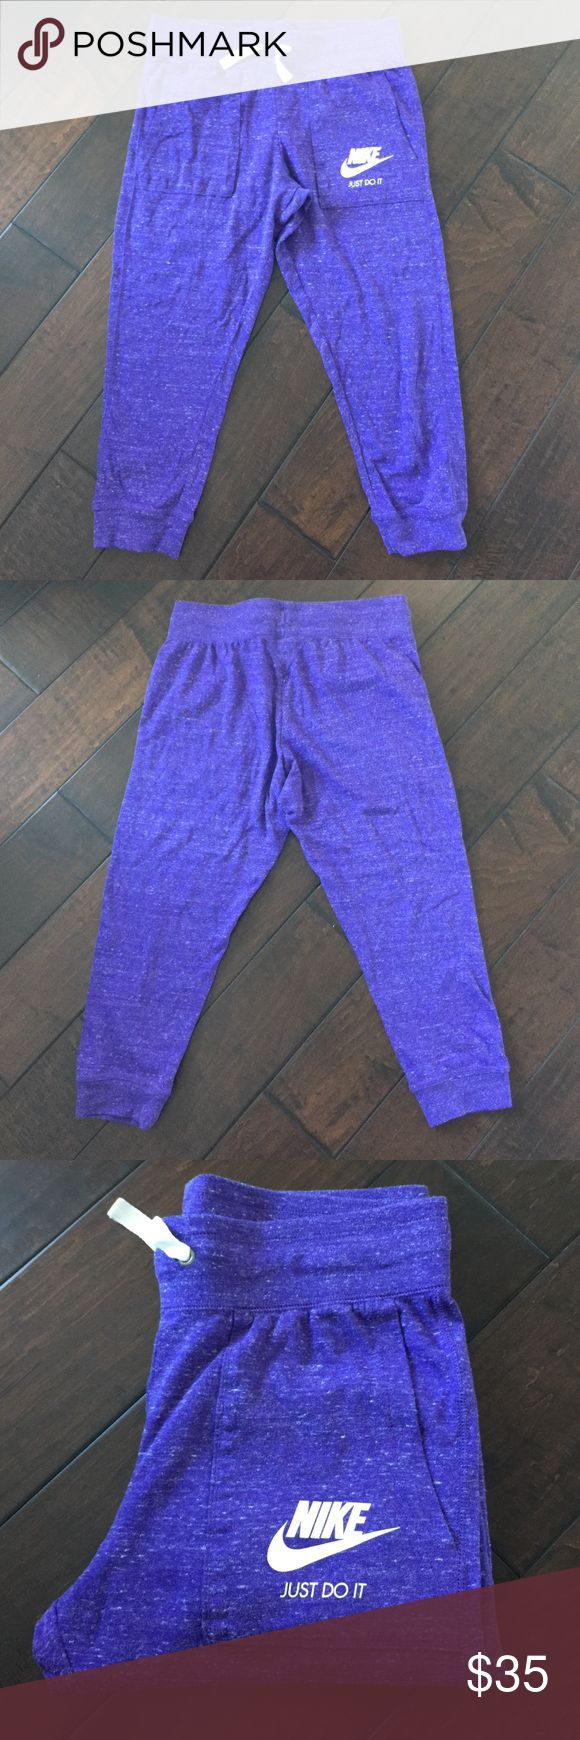 "Nike Gym Vintage Capri Pants Nike Gym Vintage Capri Pants.  Mid-rise, elastic waist/draw string. Inseam 19"".  Size Small, Color Purple.  Excellent Like New Condition, worn once.  No trades. Nike Pants Capris"